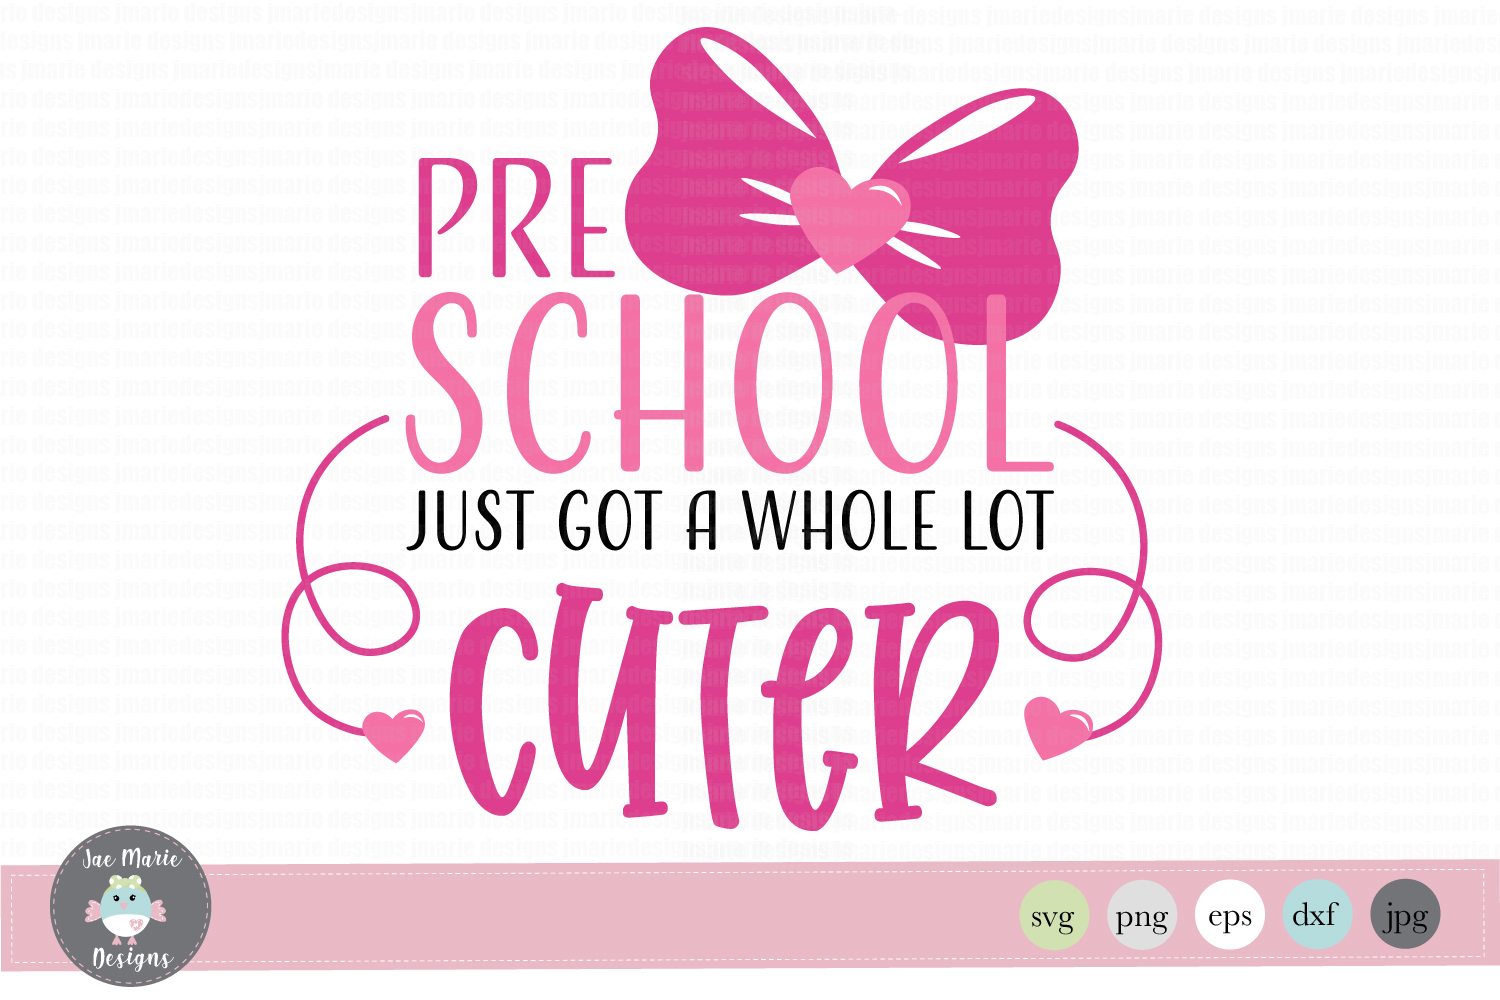 Download Free Pre School Just Got A Whole Lot Cuter Graphic By Thejaemarie for Cricut Explore, Silhouette and other cutting machines.